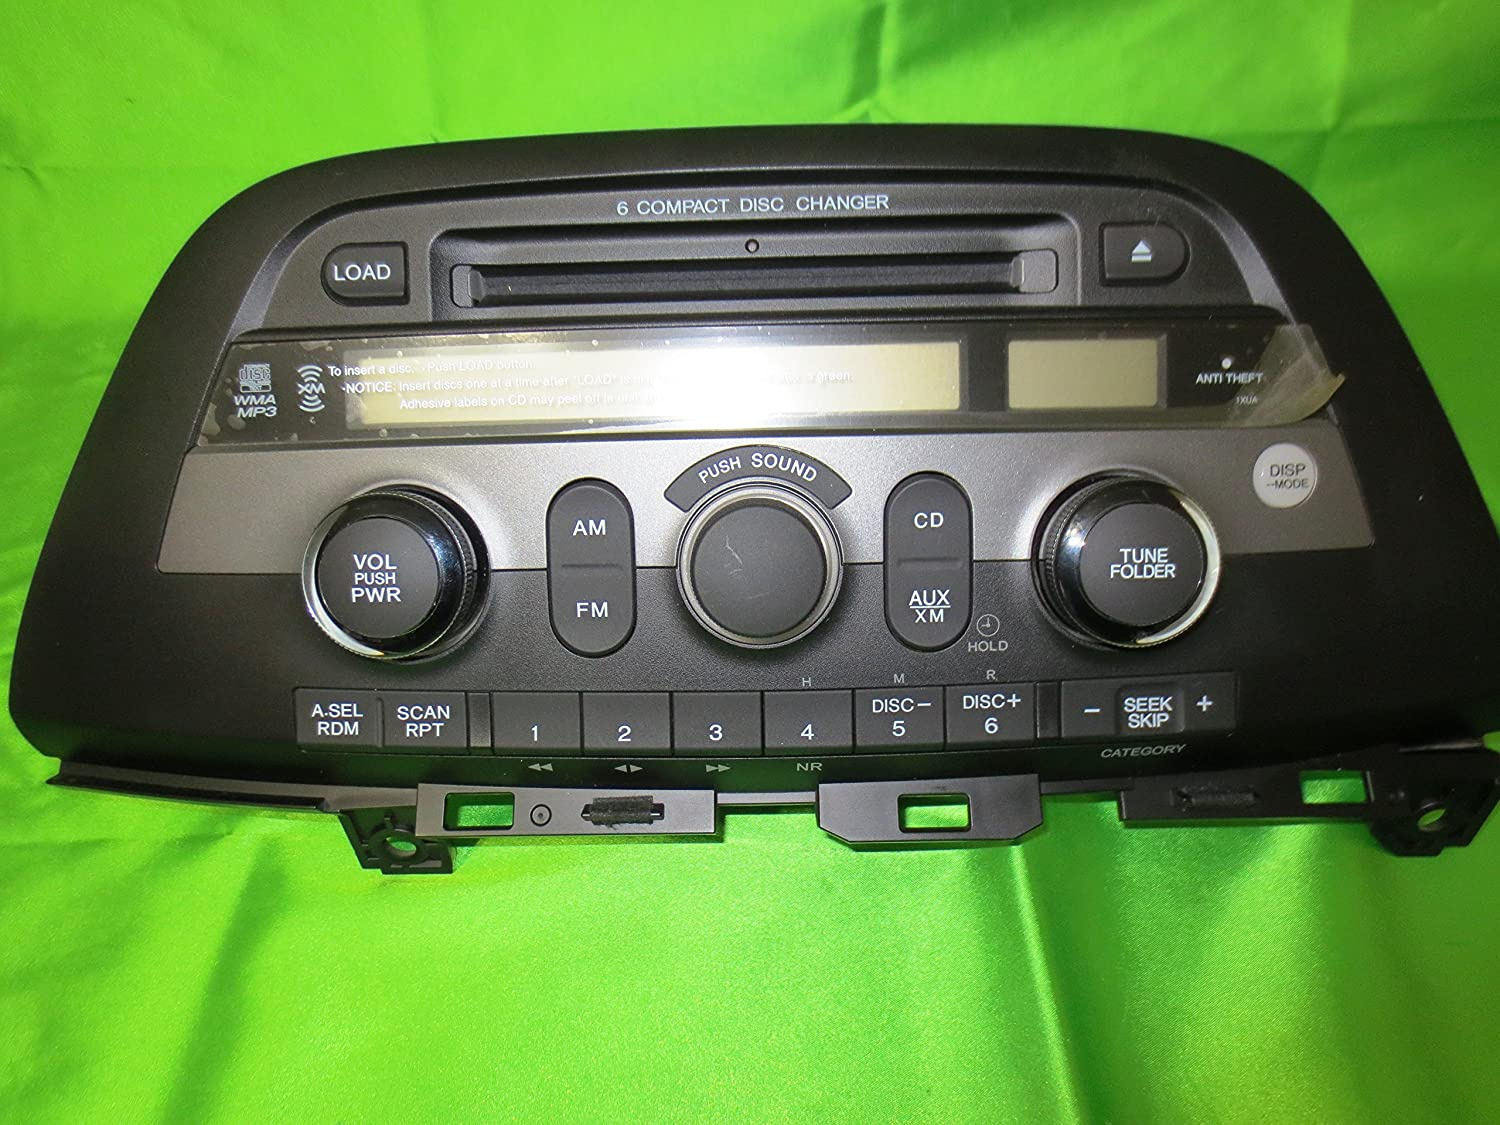 Amazon.com: 05-10 Honda Odyssey EX and EX-L Radio CD Player 6 CD Disc  Changer MP3: Car Electronics